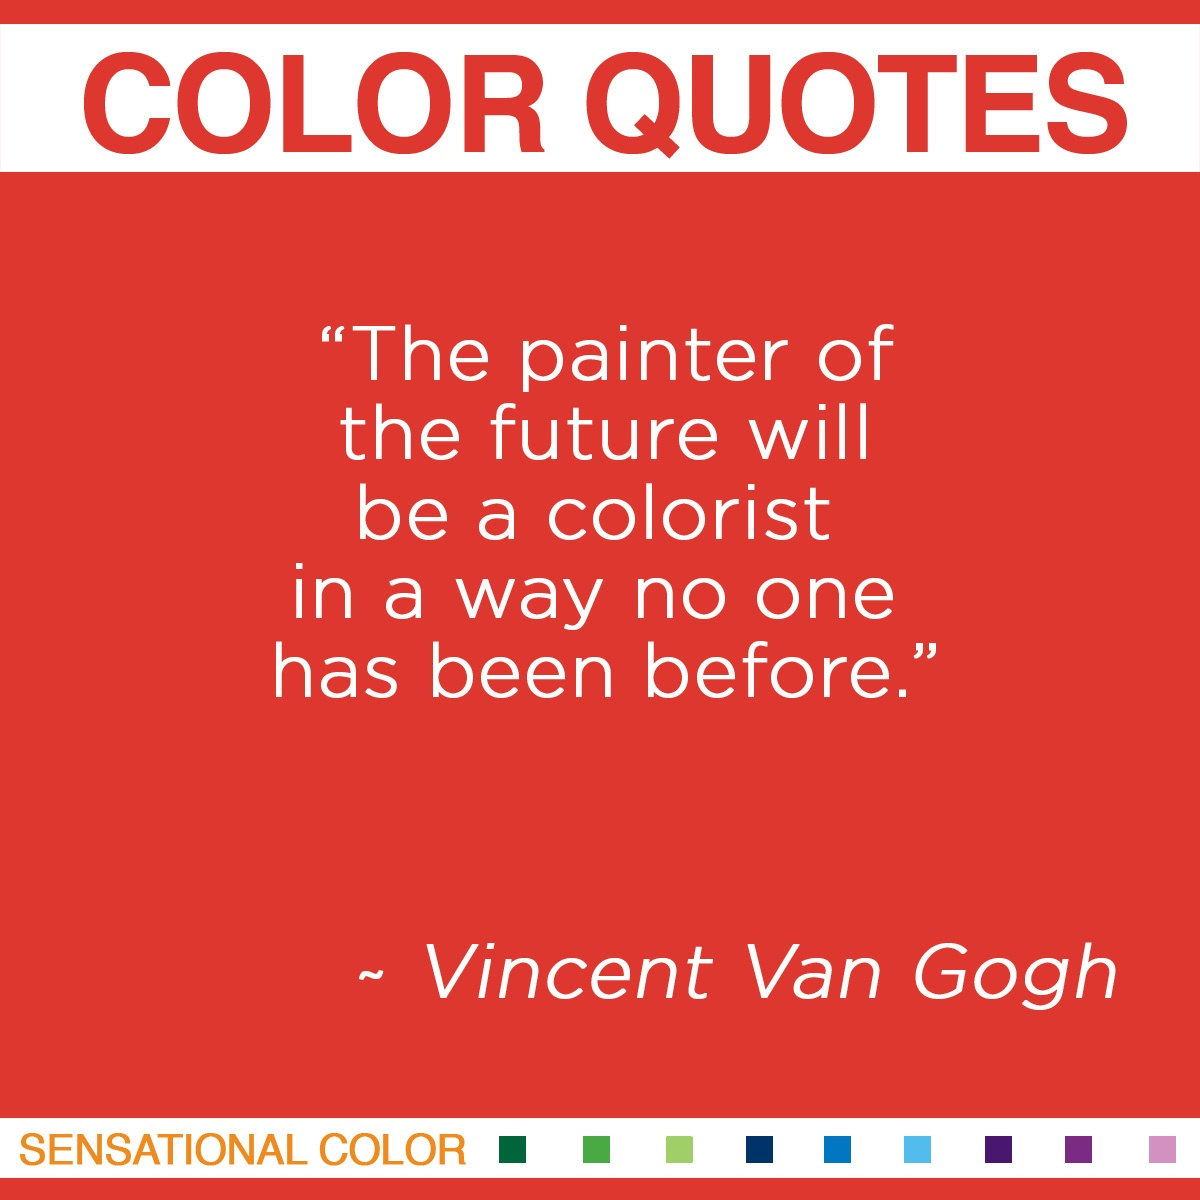 """The painter of the future will be a colorist in a way no one has been before."" - Vincent Van Gogh"